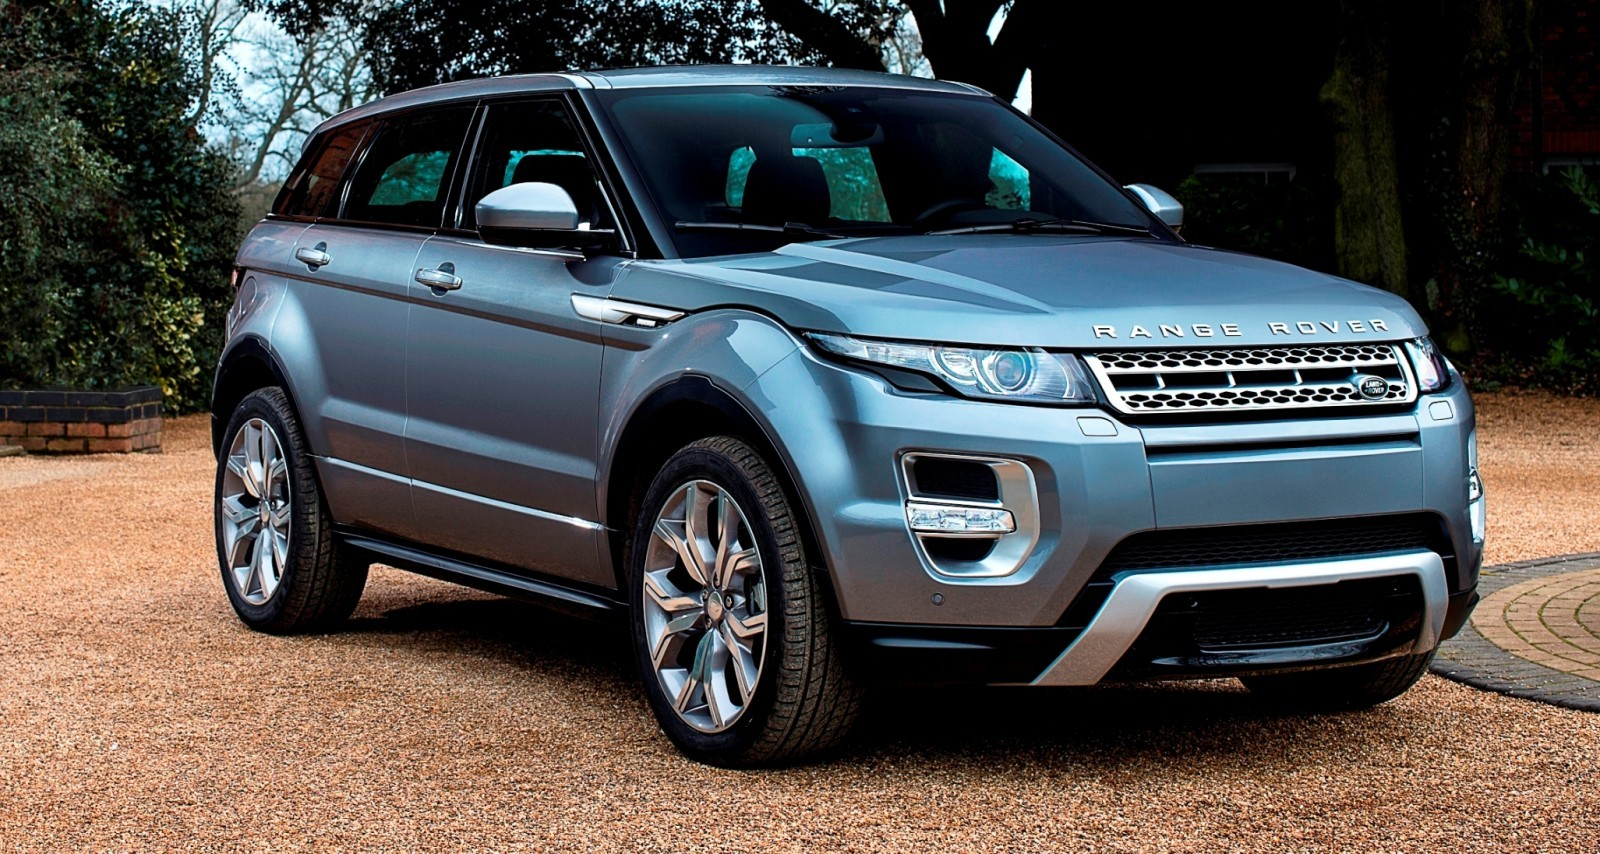 2015 Range Rover Evoque Gains 9-Speed Auto, Refreshed Info Tech and Boosted Engine HP 2